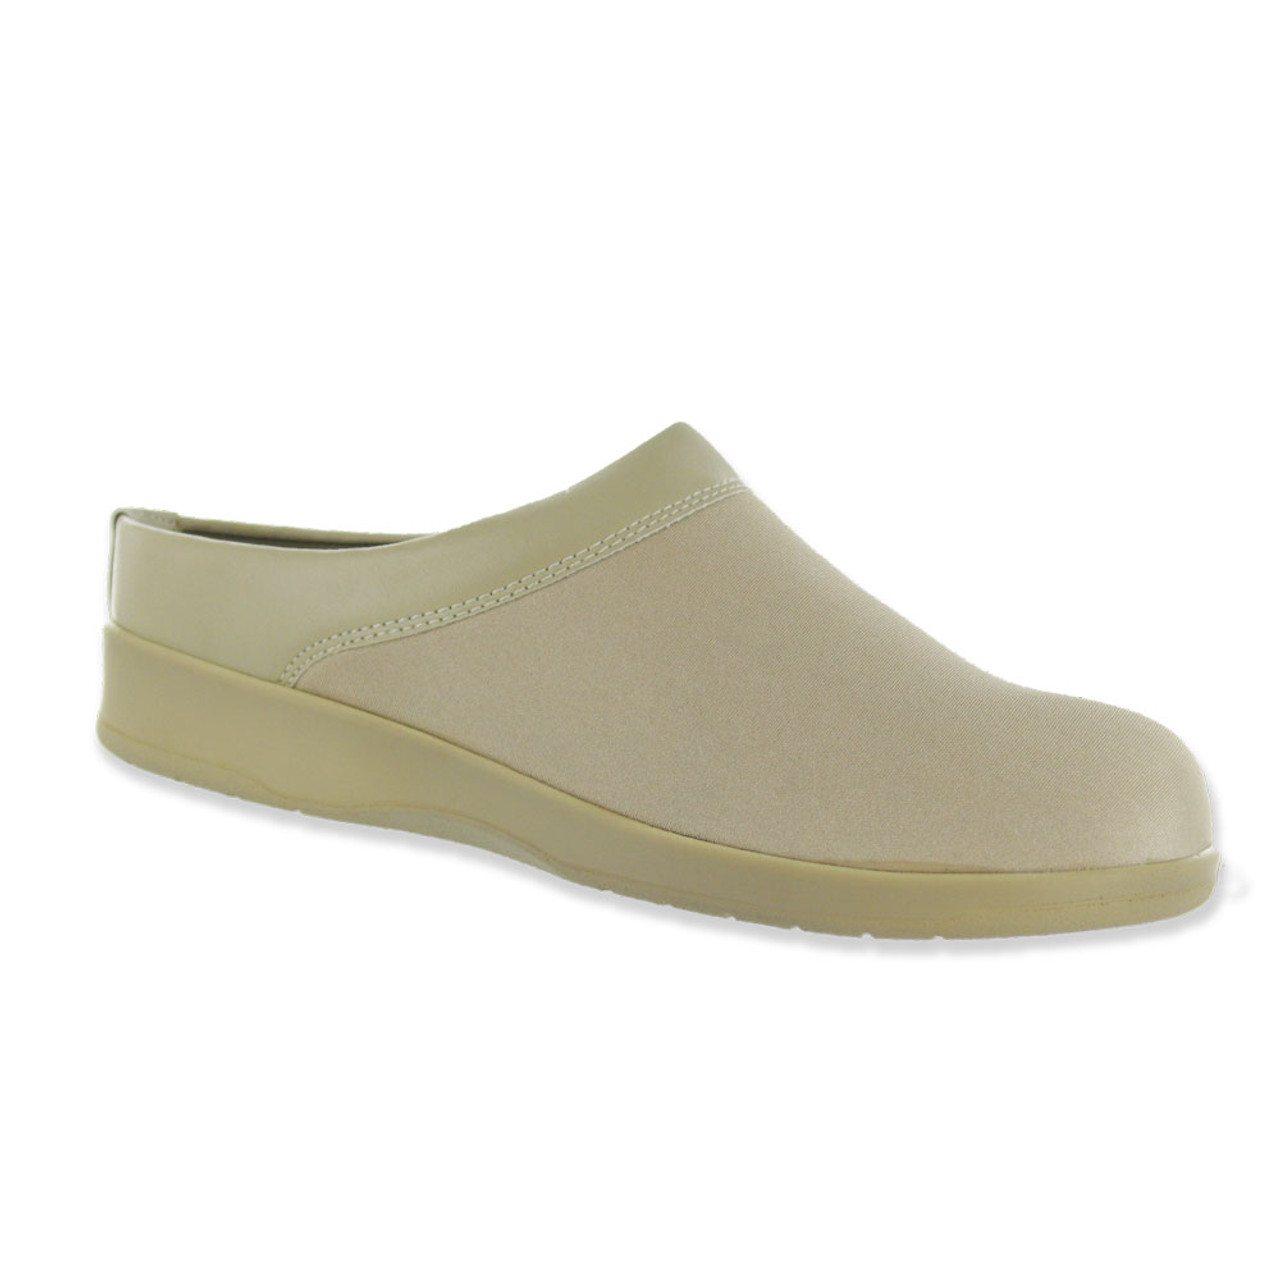 shop for authentic performance sportswear how to purchase Pedors Euro Style Stretch Clog / Mule For Women